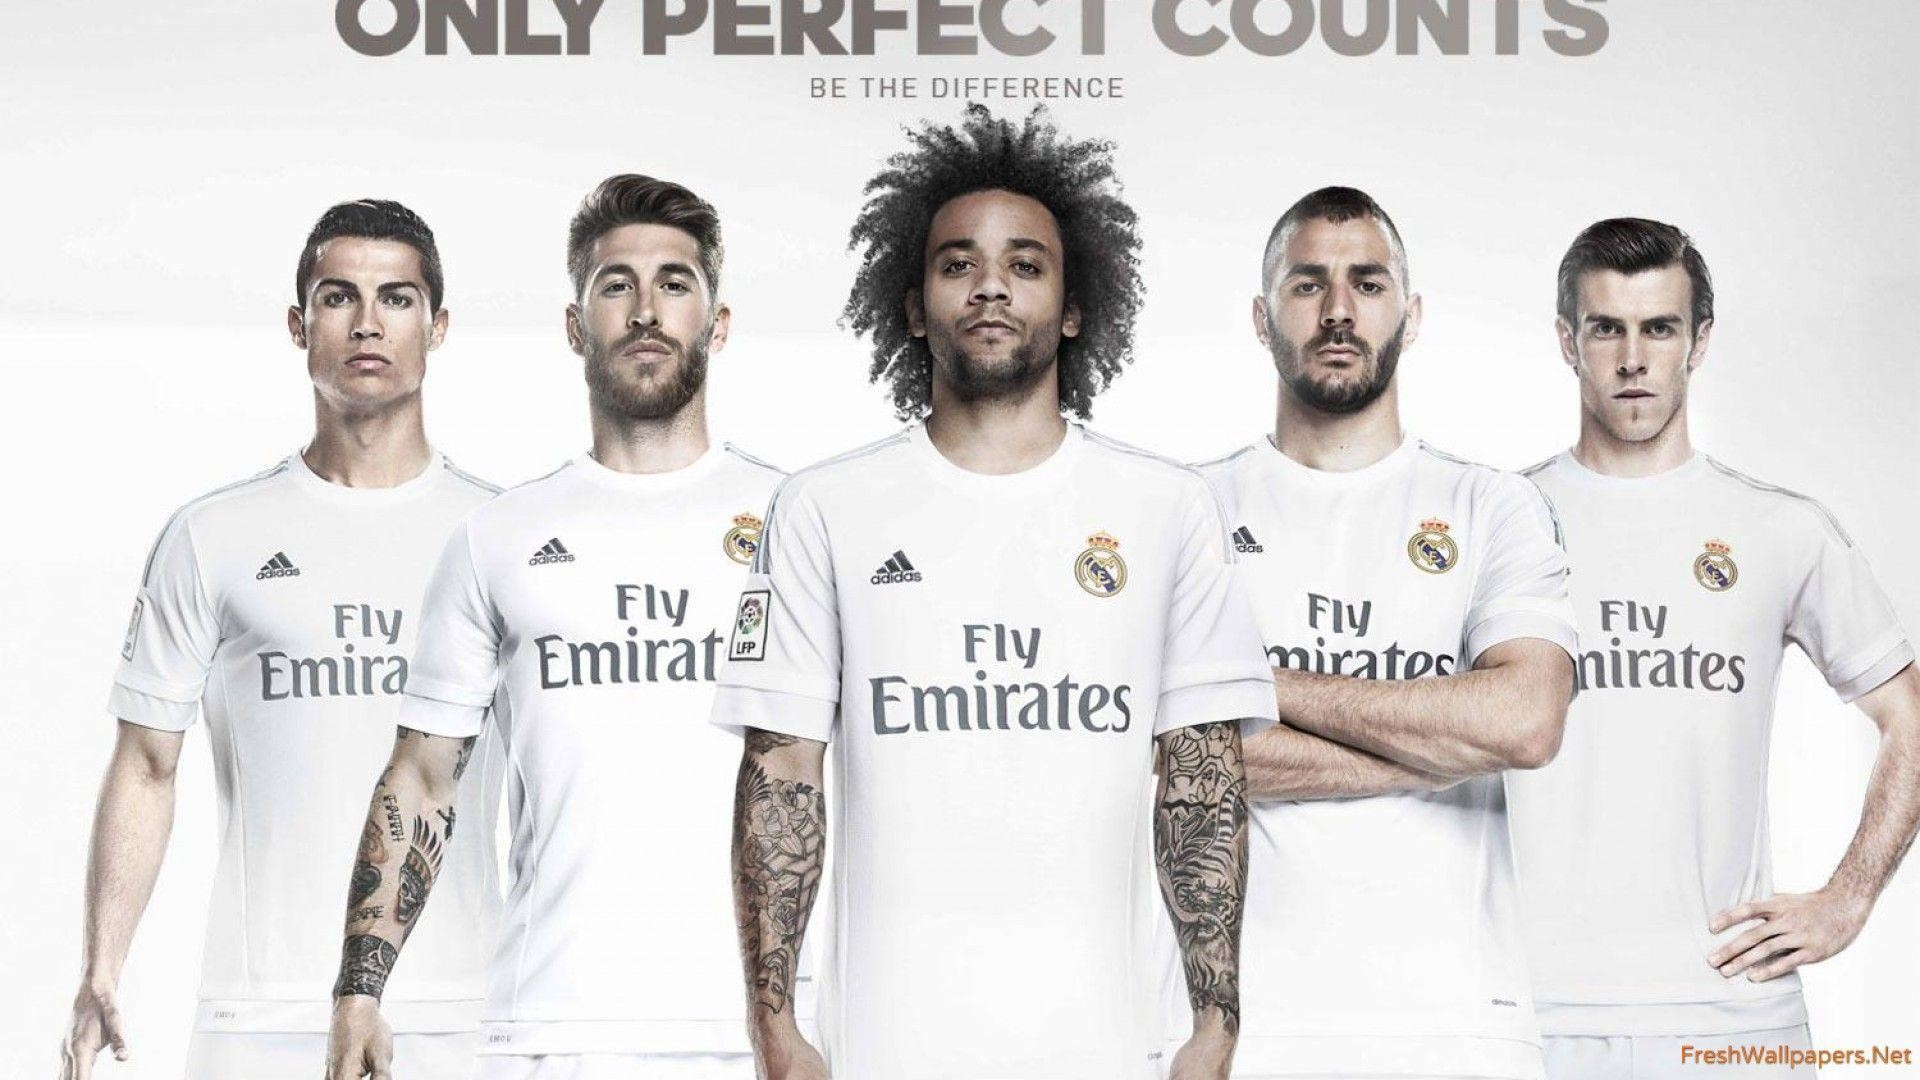 real madrid hd wallpaper 2018 64 images